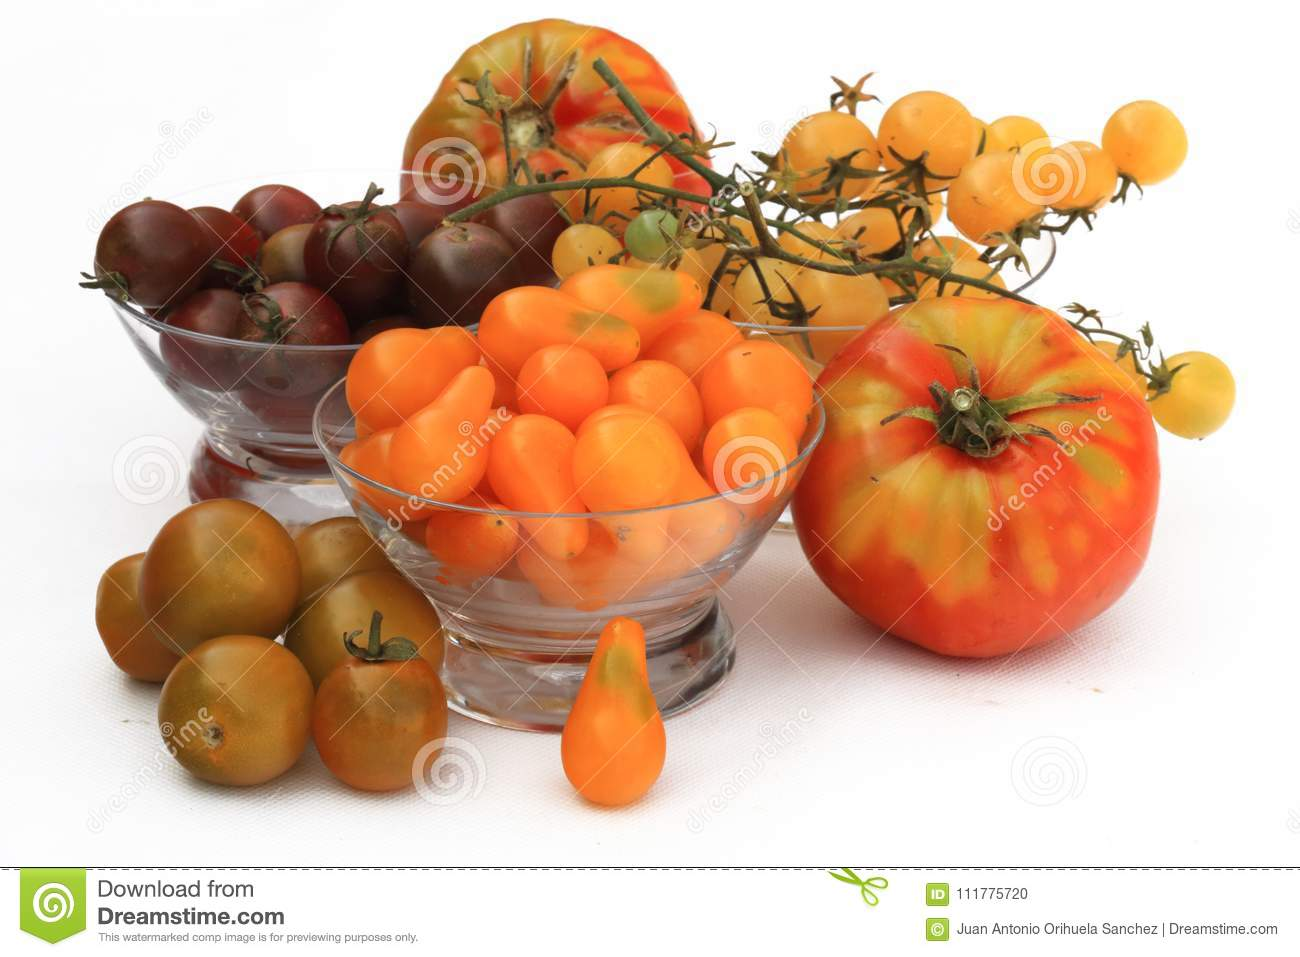 Variety of fresh tomatoes grown in organic orchards